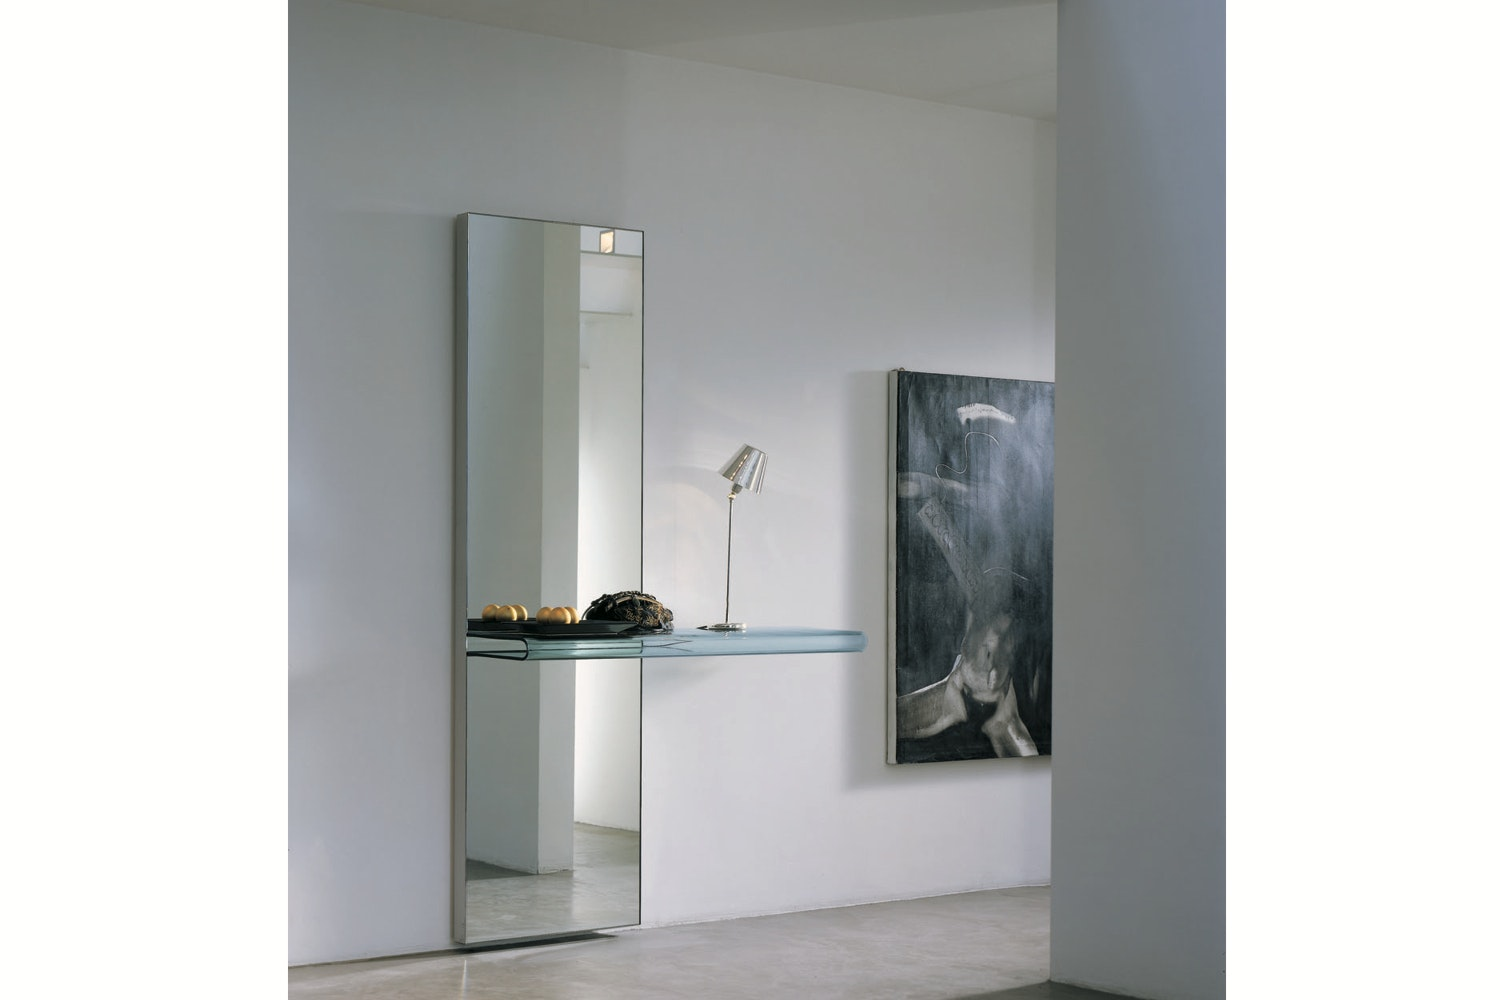 Let Me See Console Table by Rodolfo Dordoni for Fiam Italia